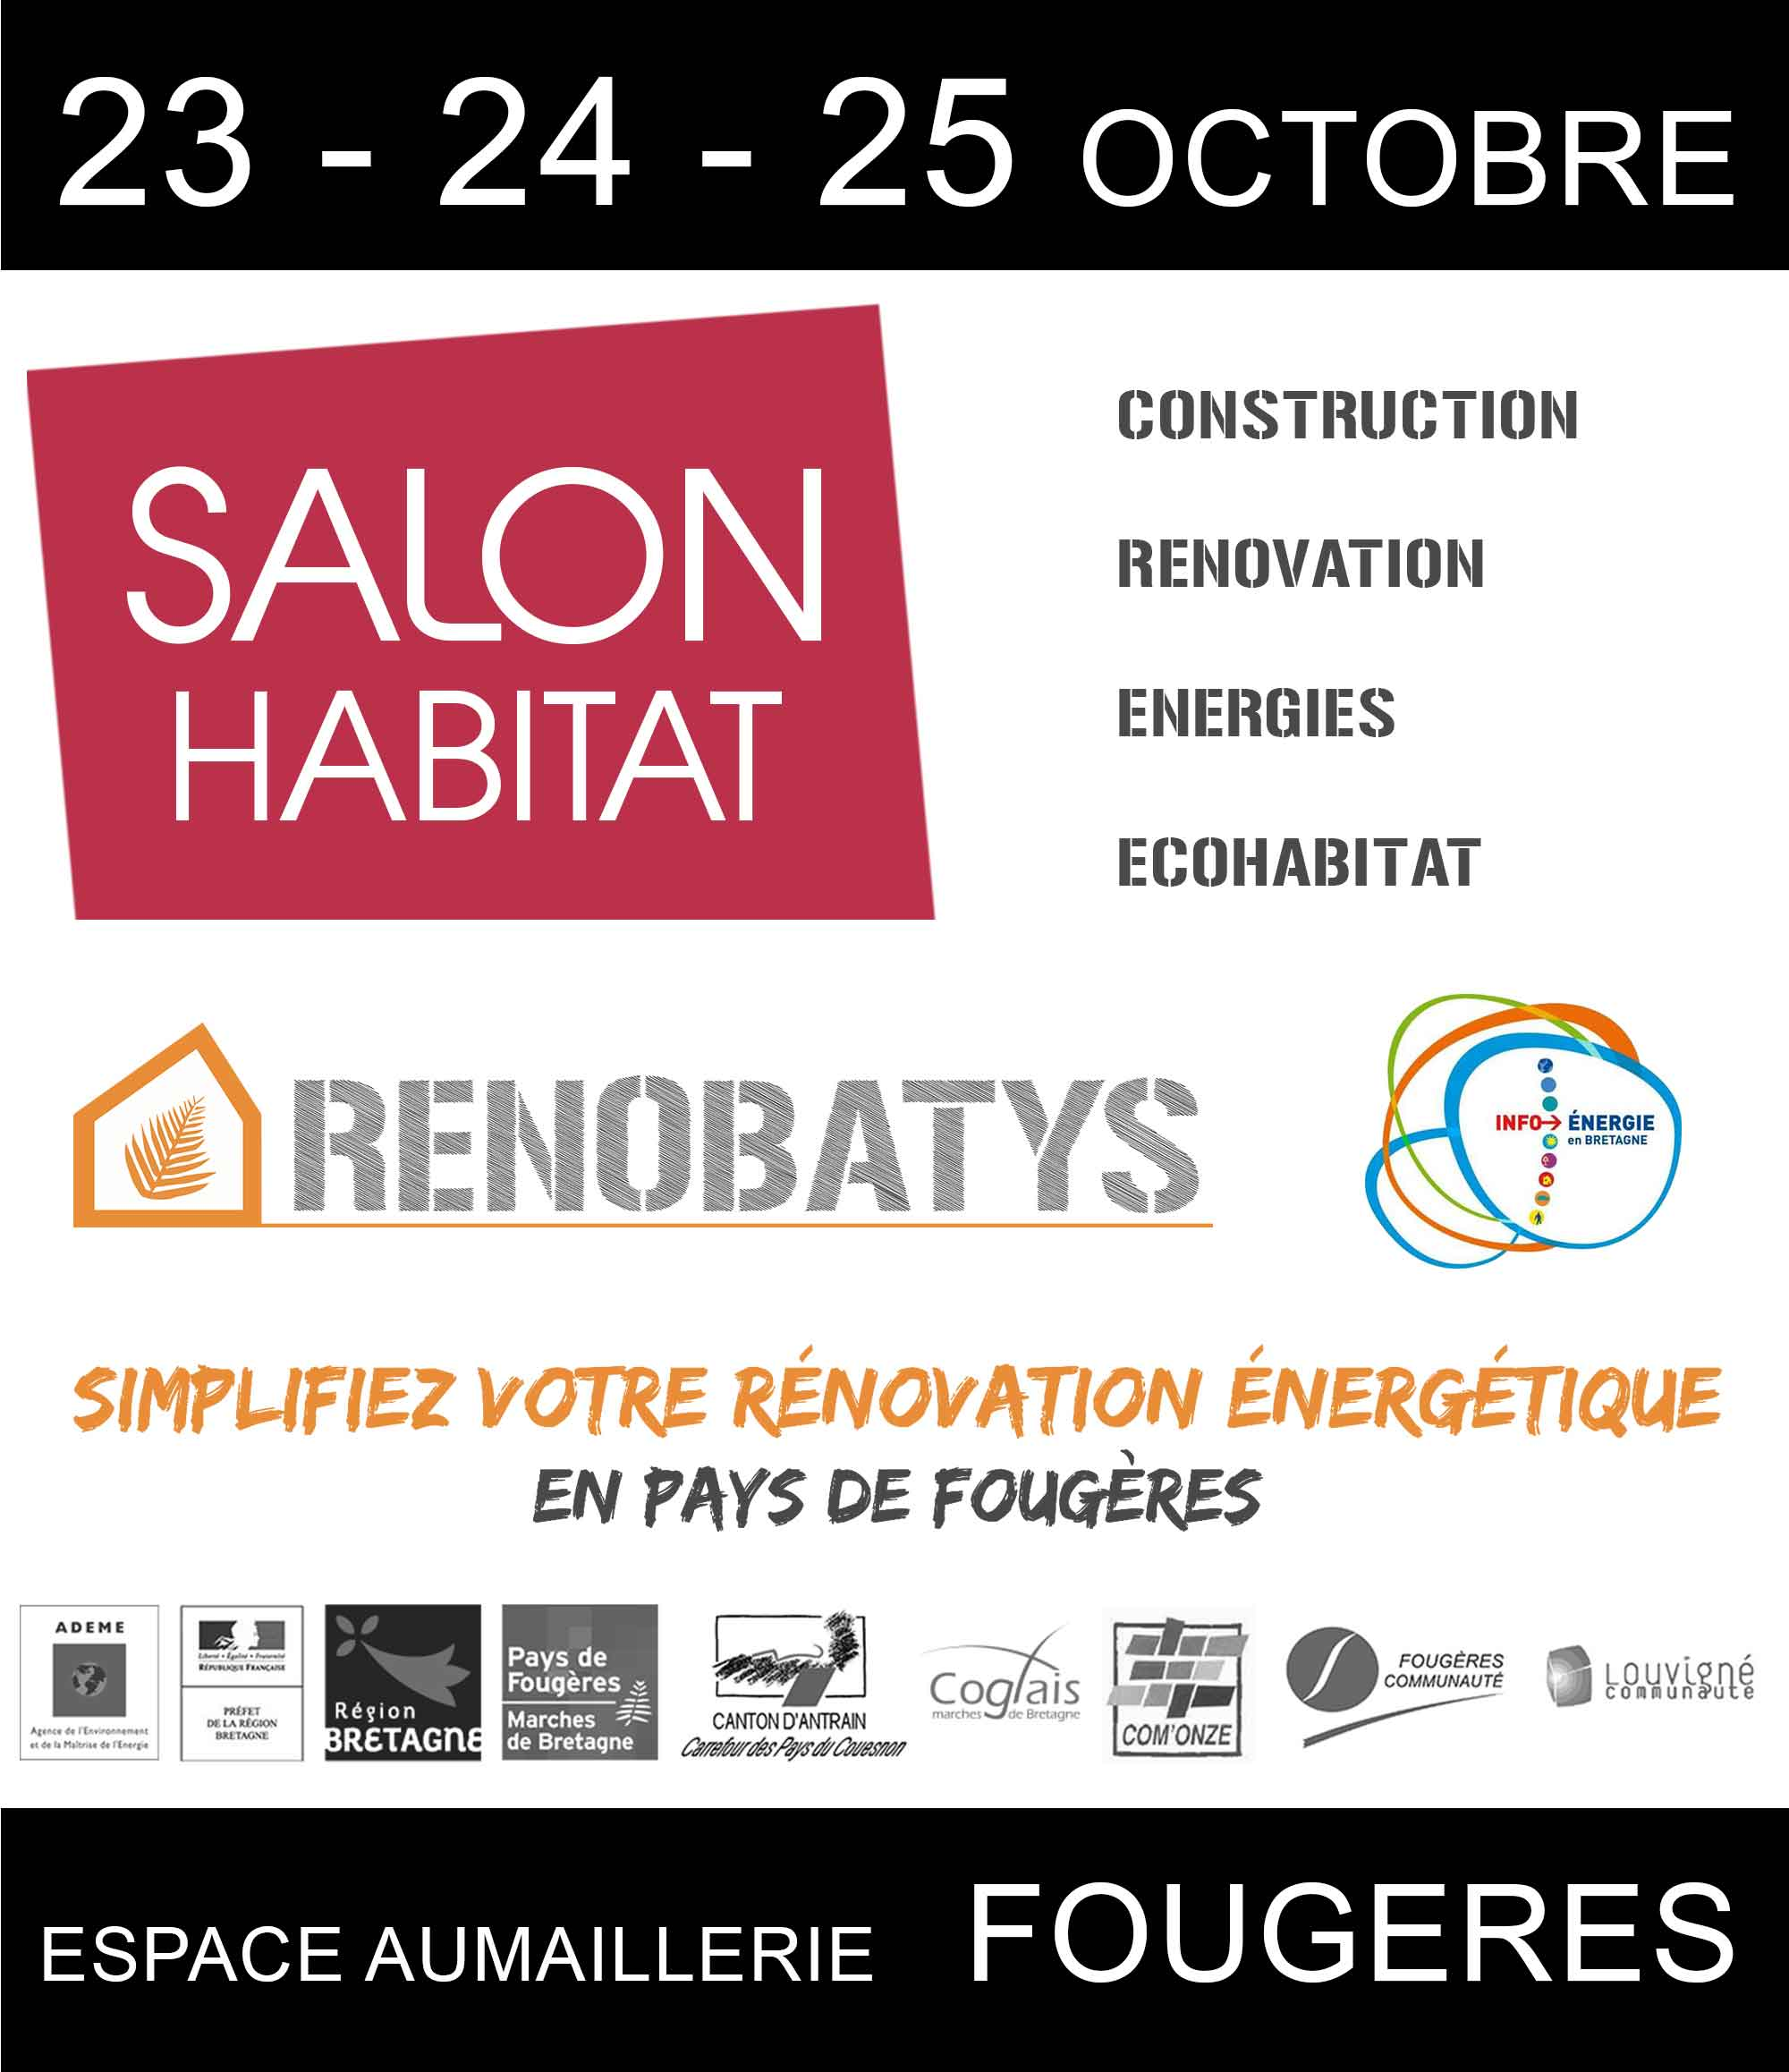 salon-habitat-renobatys-renovation-energetique